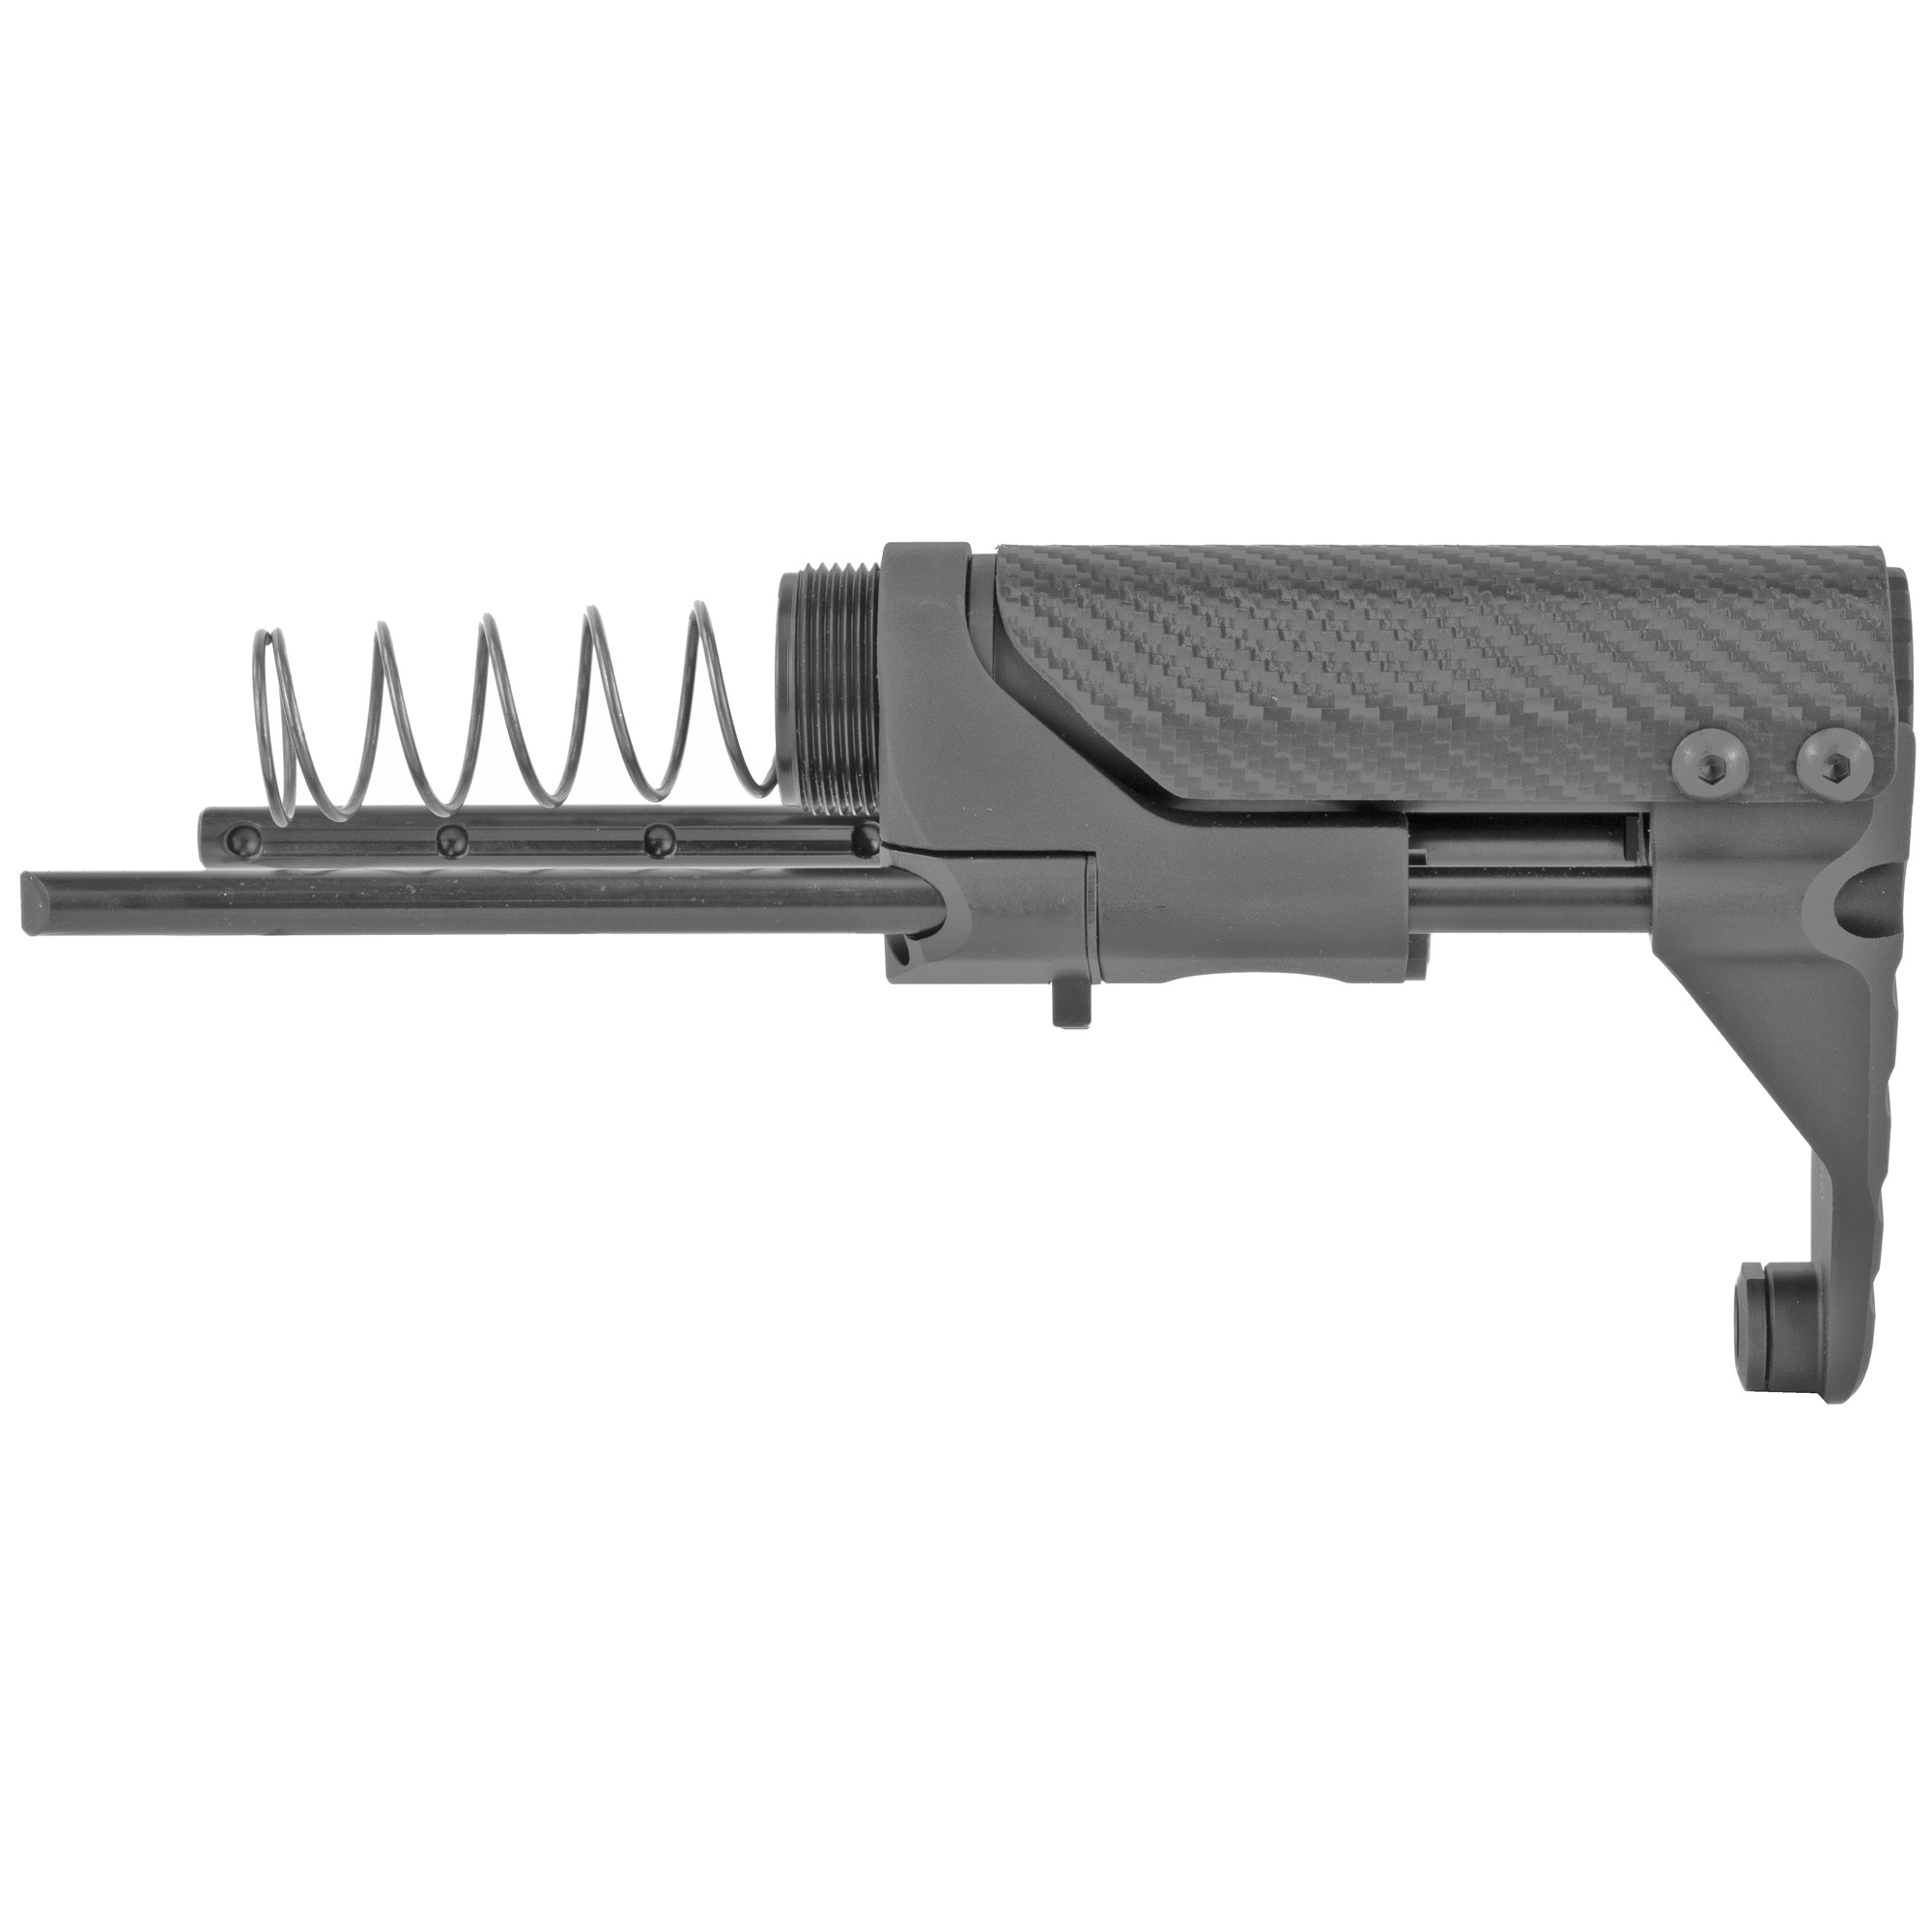 Bad Vert Pdw Stock System Blk